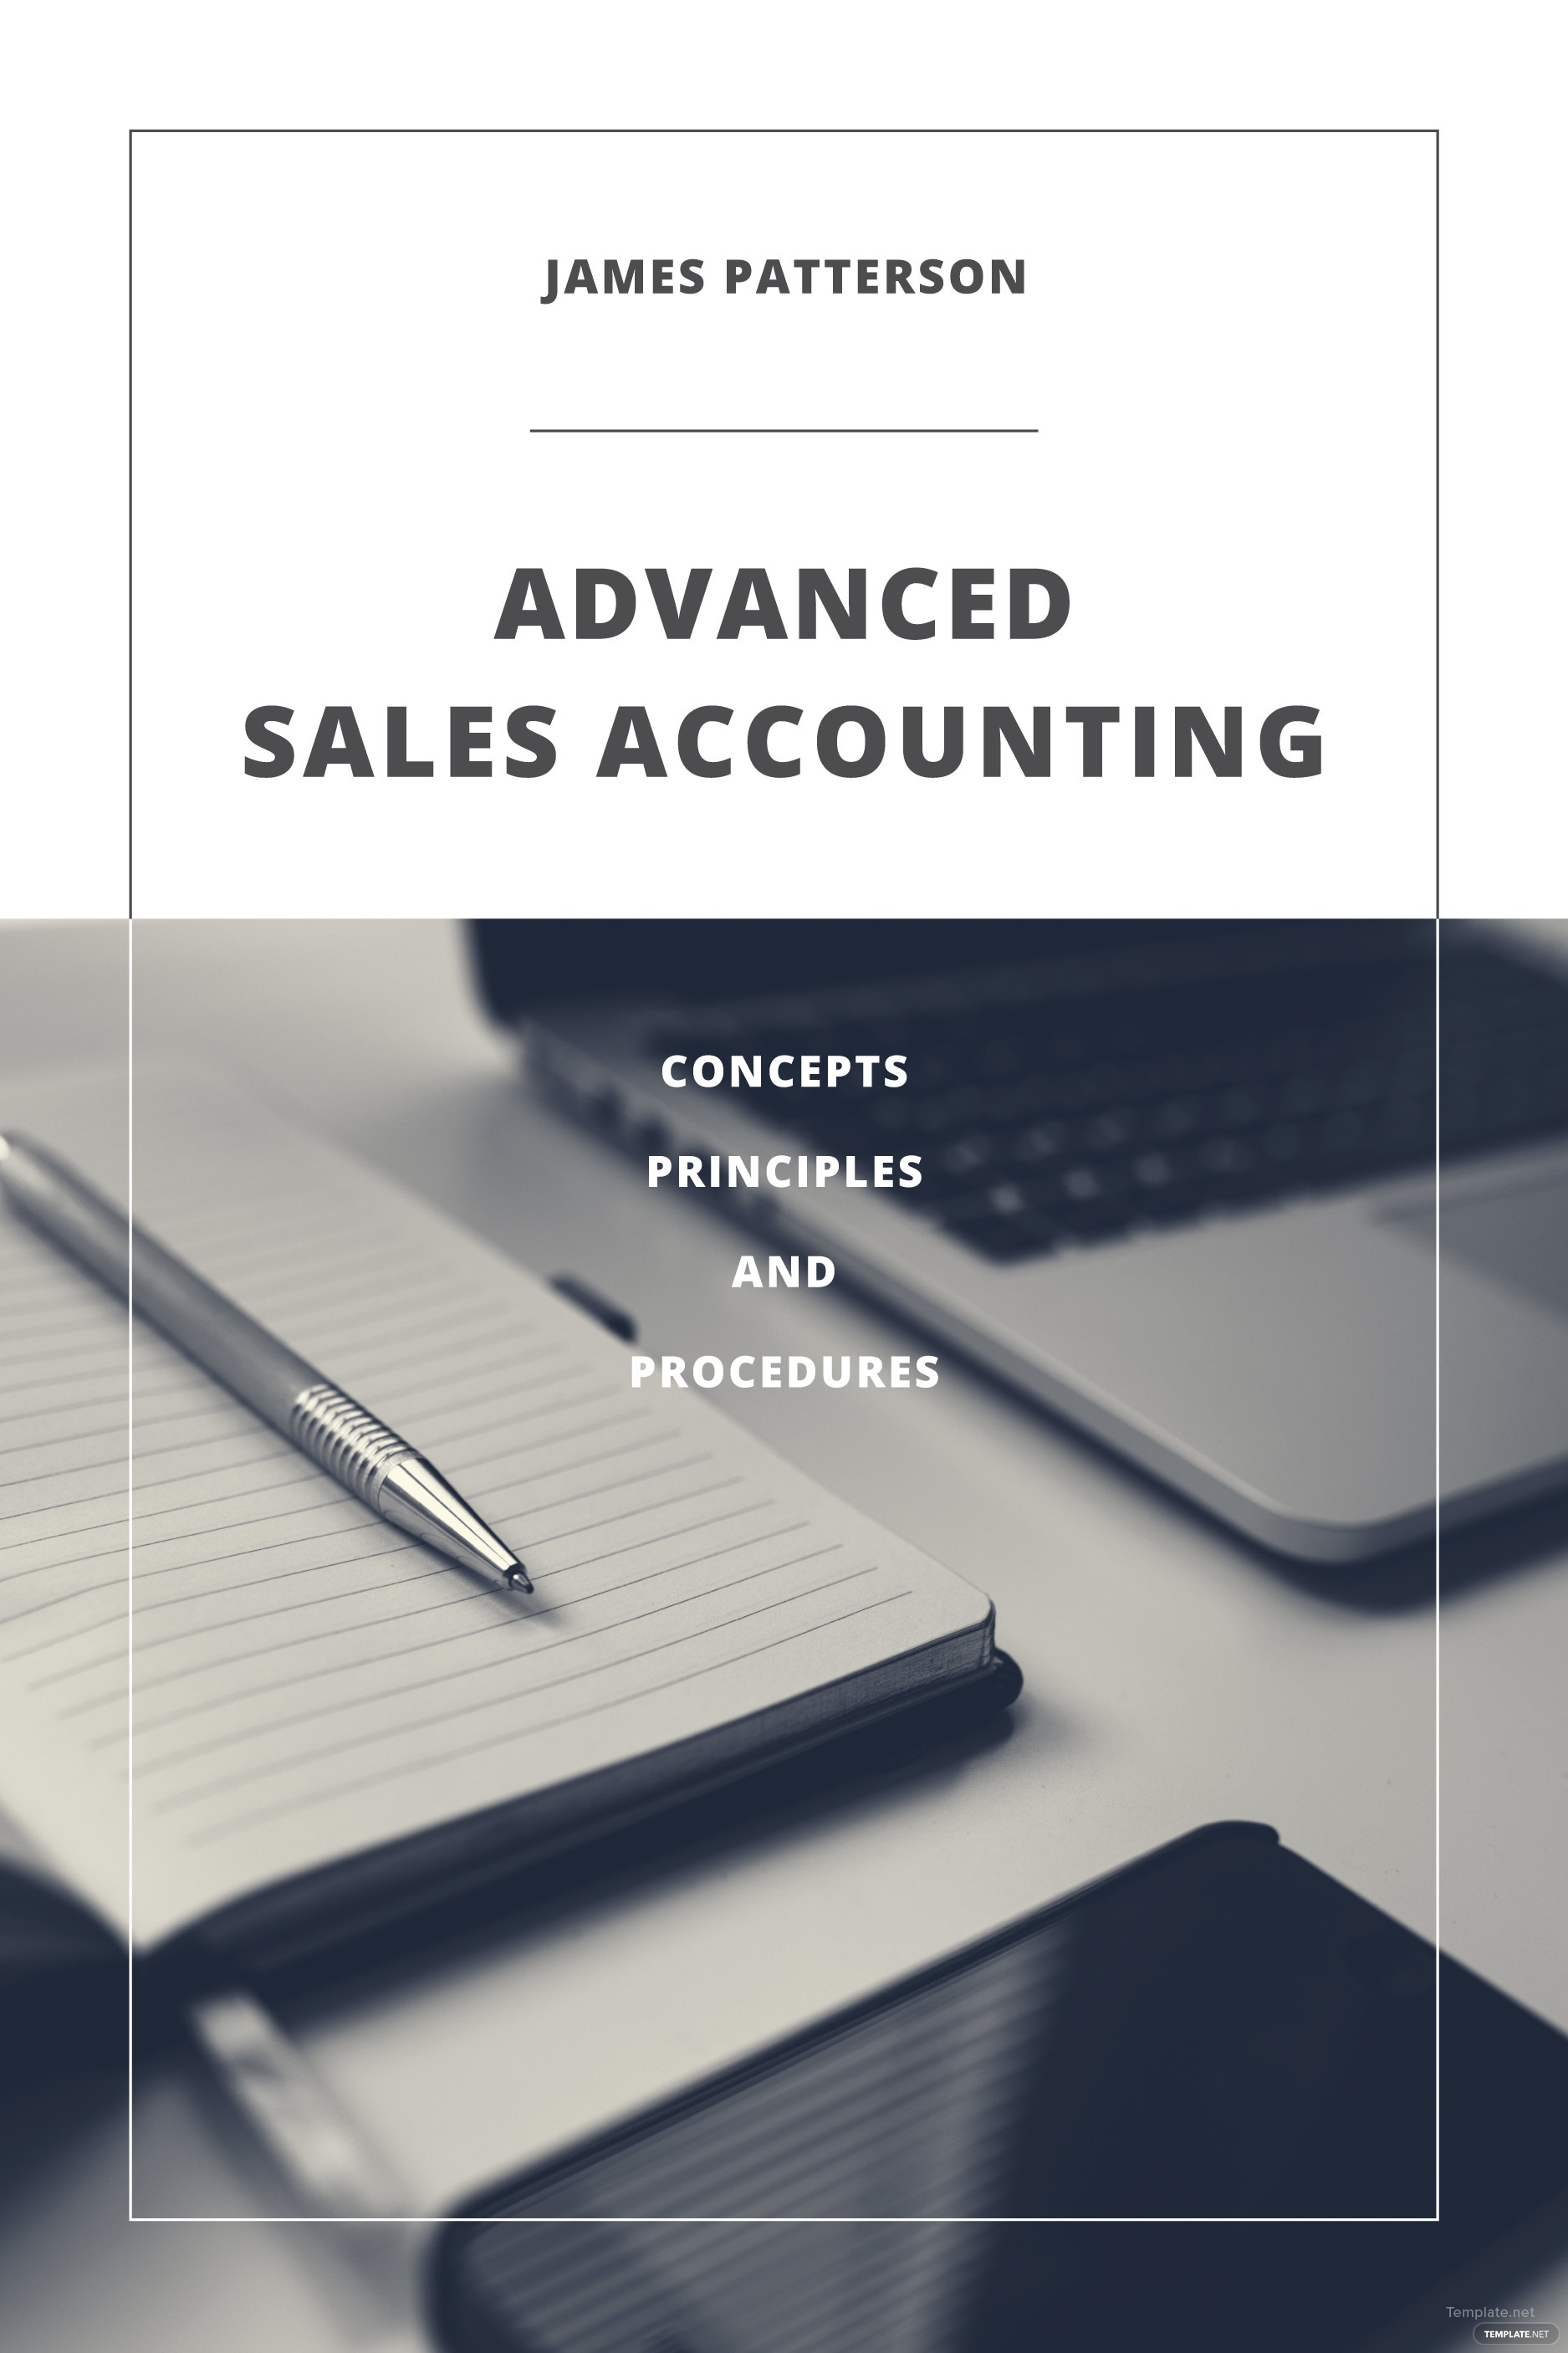 Free Accounting Book Cover Template in Adobe Photoshop, Illustrator ...